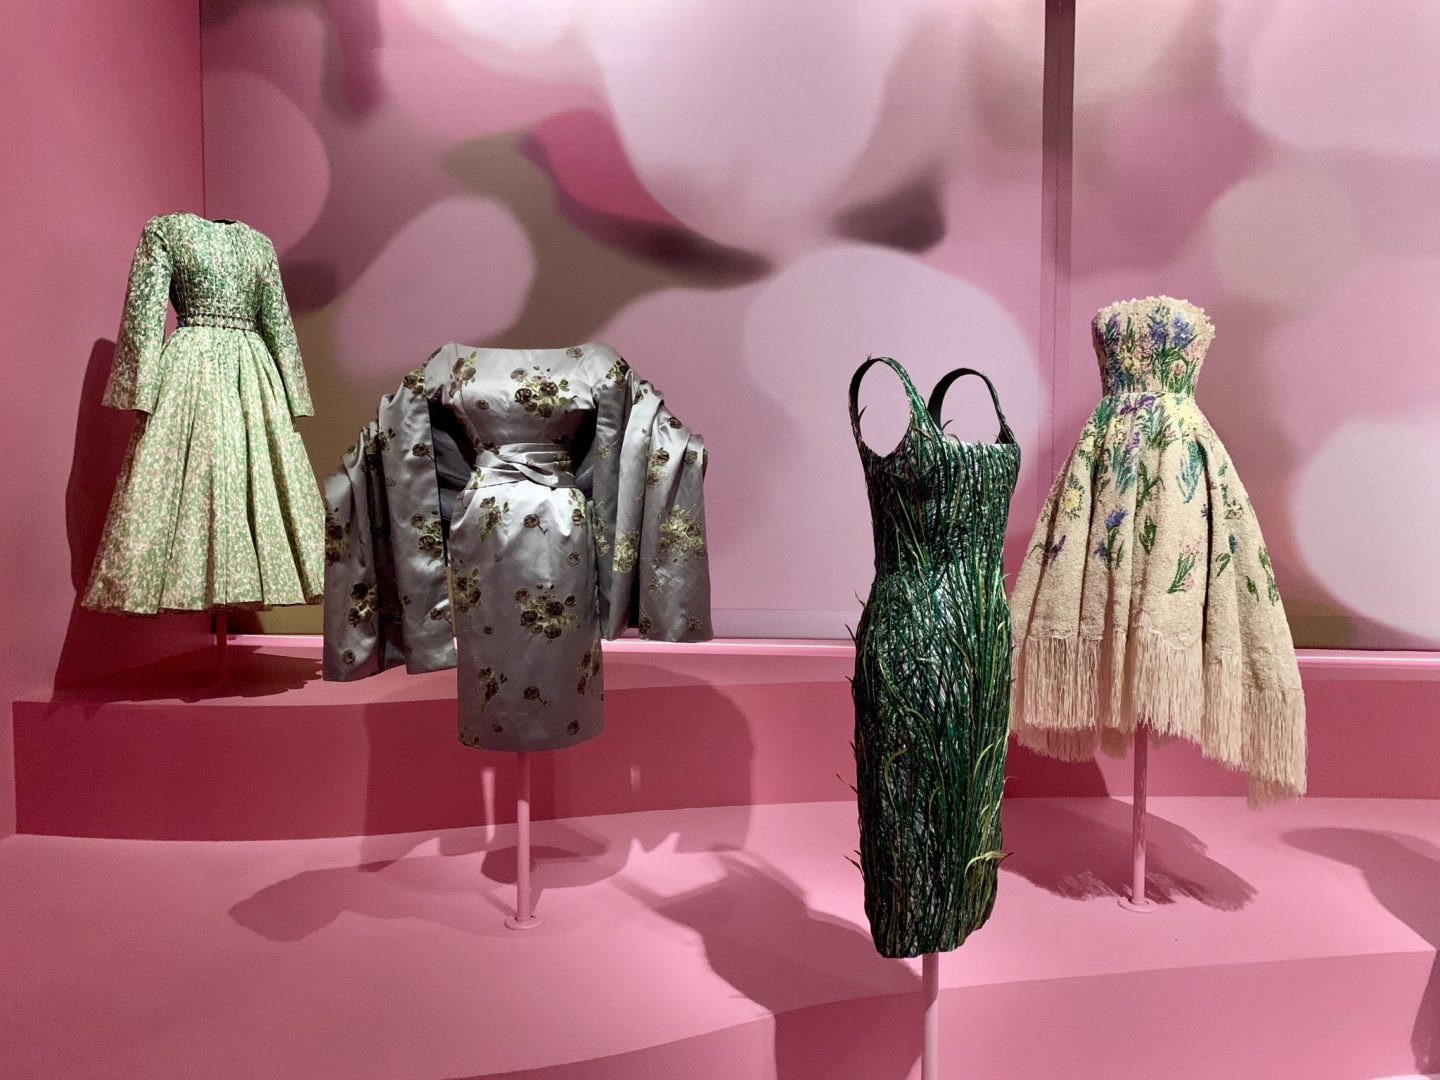 Christian Dior Art Exhibit at the Dallas Museum of Art floral dresses